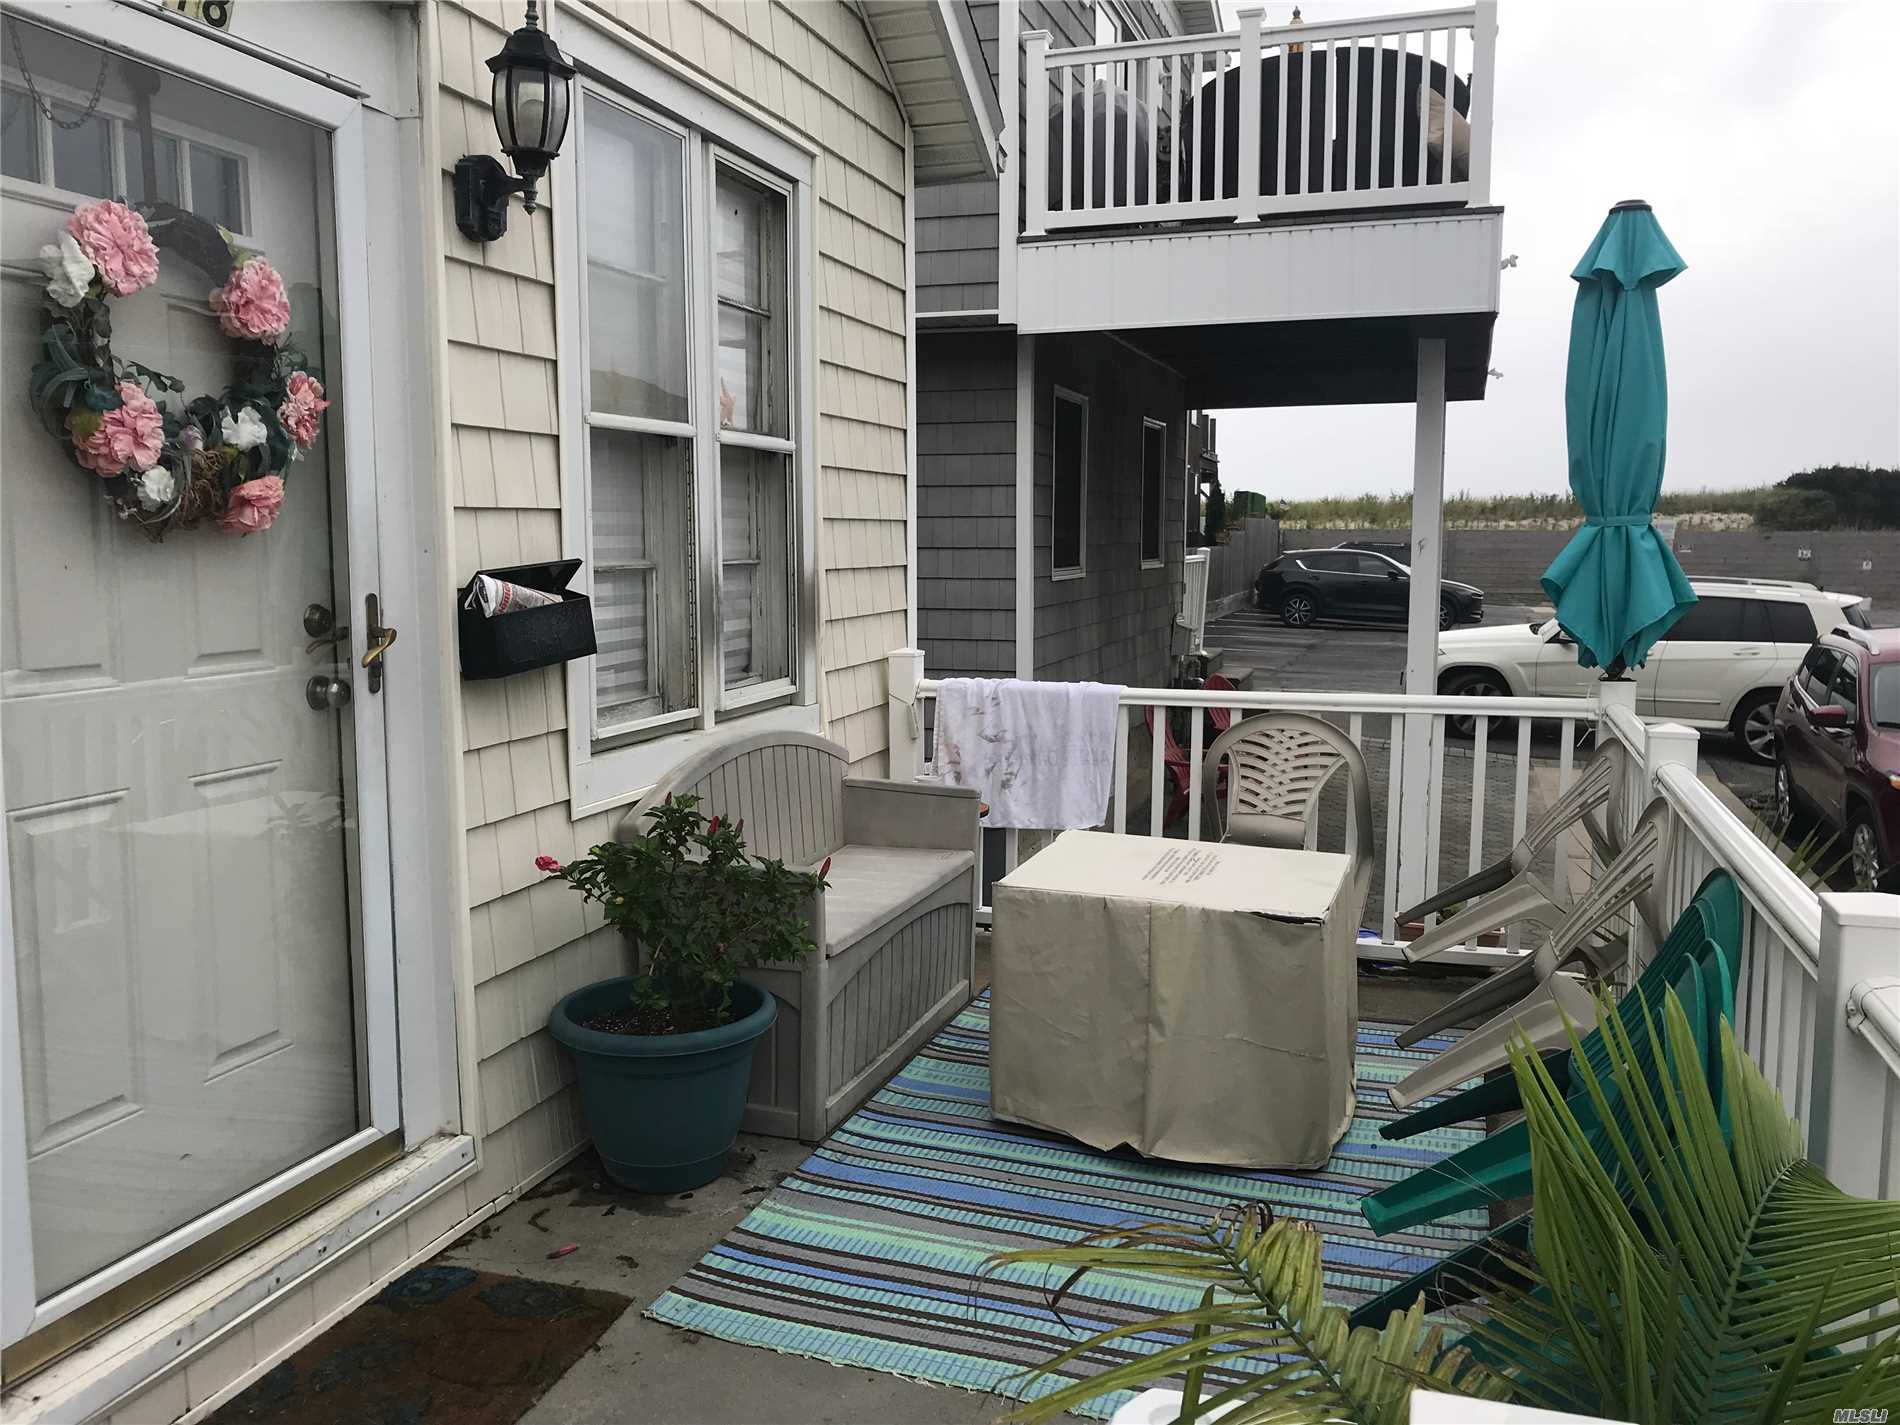 Location Location Location! 2nd House From The Beach!! This Home Features 3Br's, 1 Bath, With A Front Porch Located In The Trendy West End. Close To Restaurants, Shops Etc.... Get In Time To Enjoy The Summer Or Build Your Dream Home. You Have The Option To Purchase Existing Home With Plans Or Owner Will Build To Suit Your Needs At A New Negotiated Price. Whatever You Decide You Will At The Ocean.